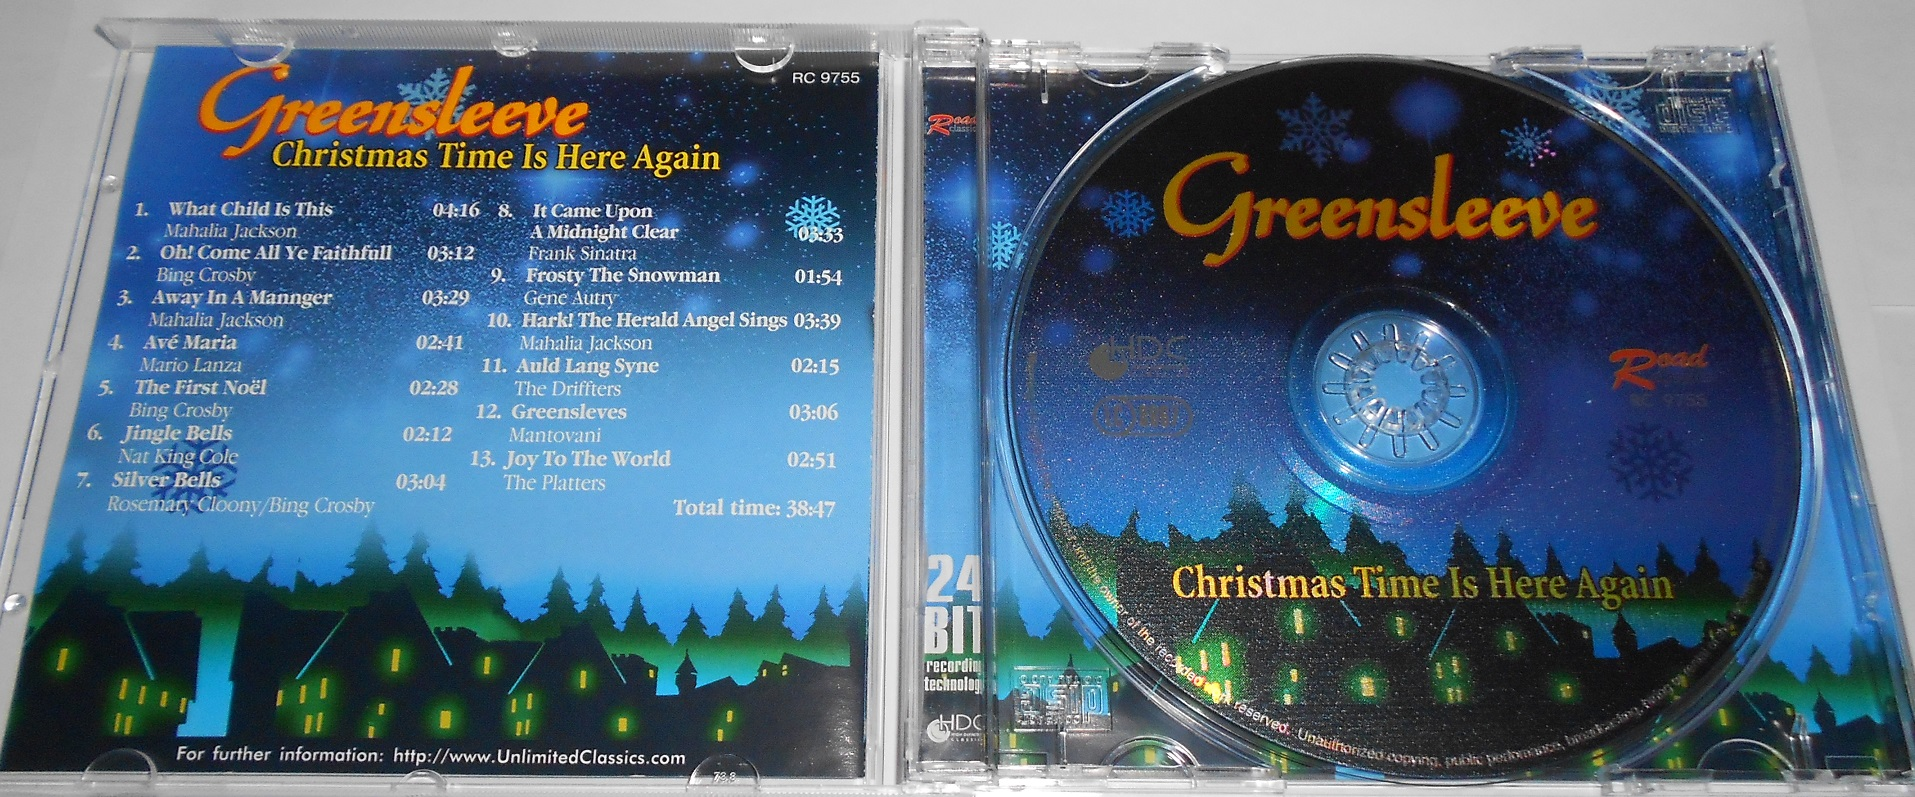 Greensleeve - Christma Time Is Here Again